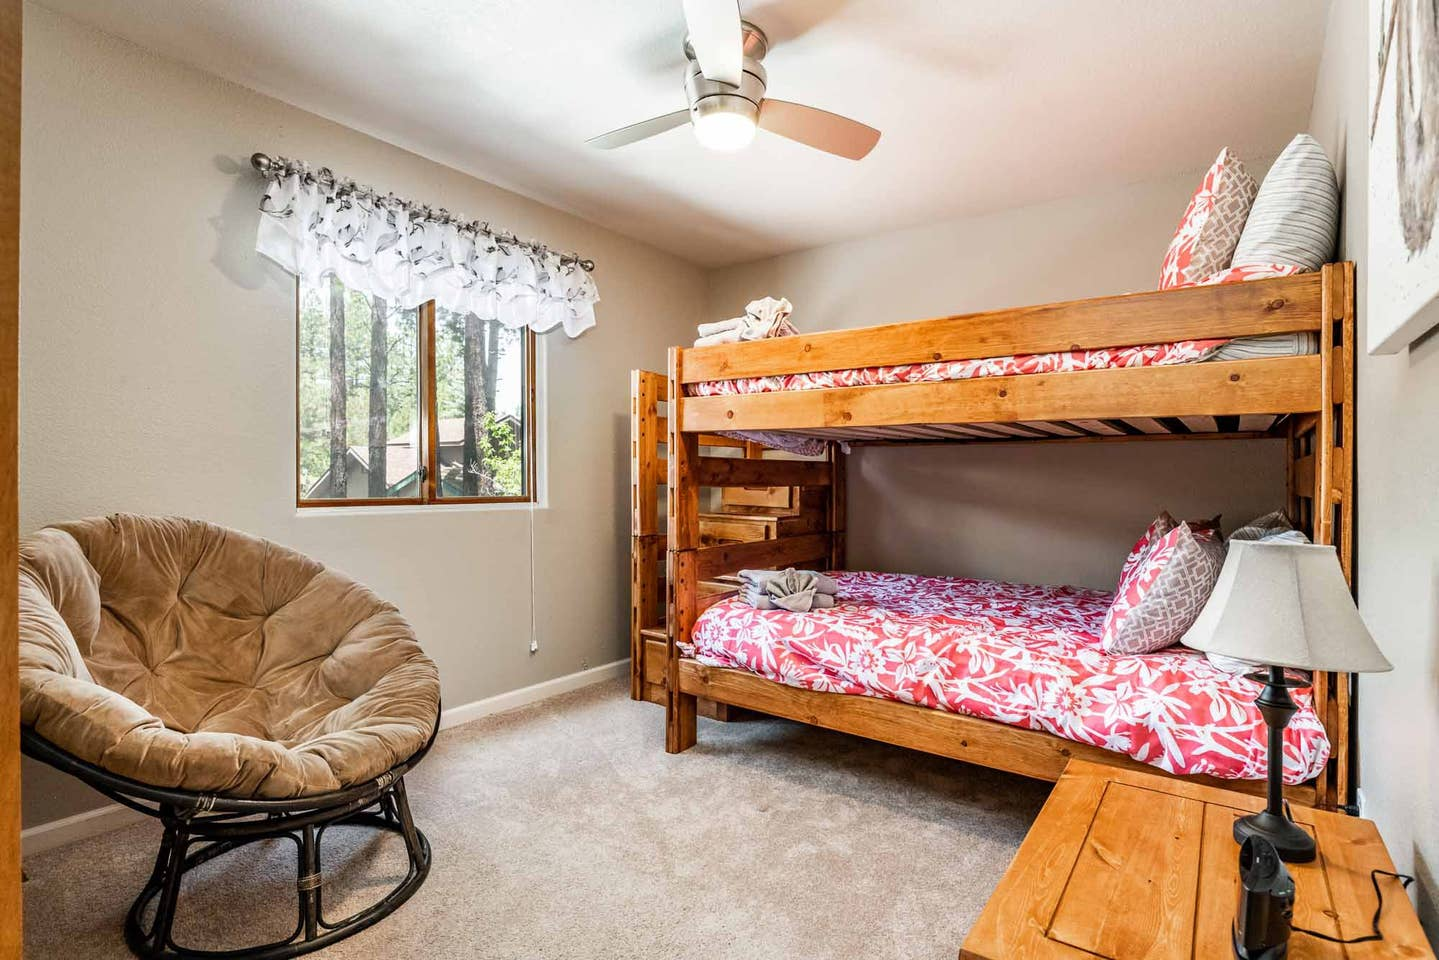 #4 The Friendship Room - This bedroom is on the main floor and is set up with a bunk bed style. It has a full bathroom just a few feet down the hall. This room can be booked for $400 per person.